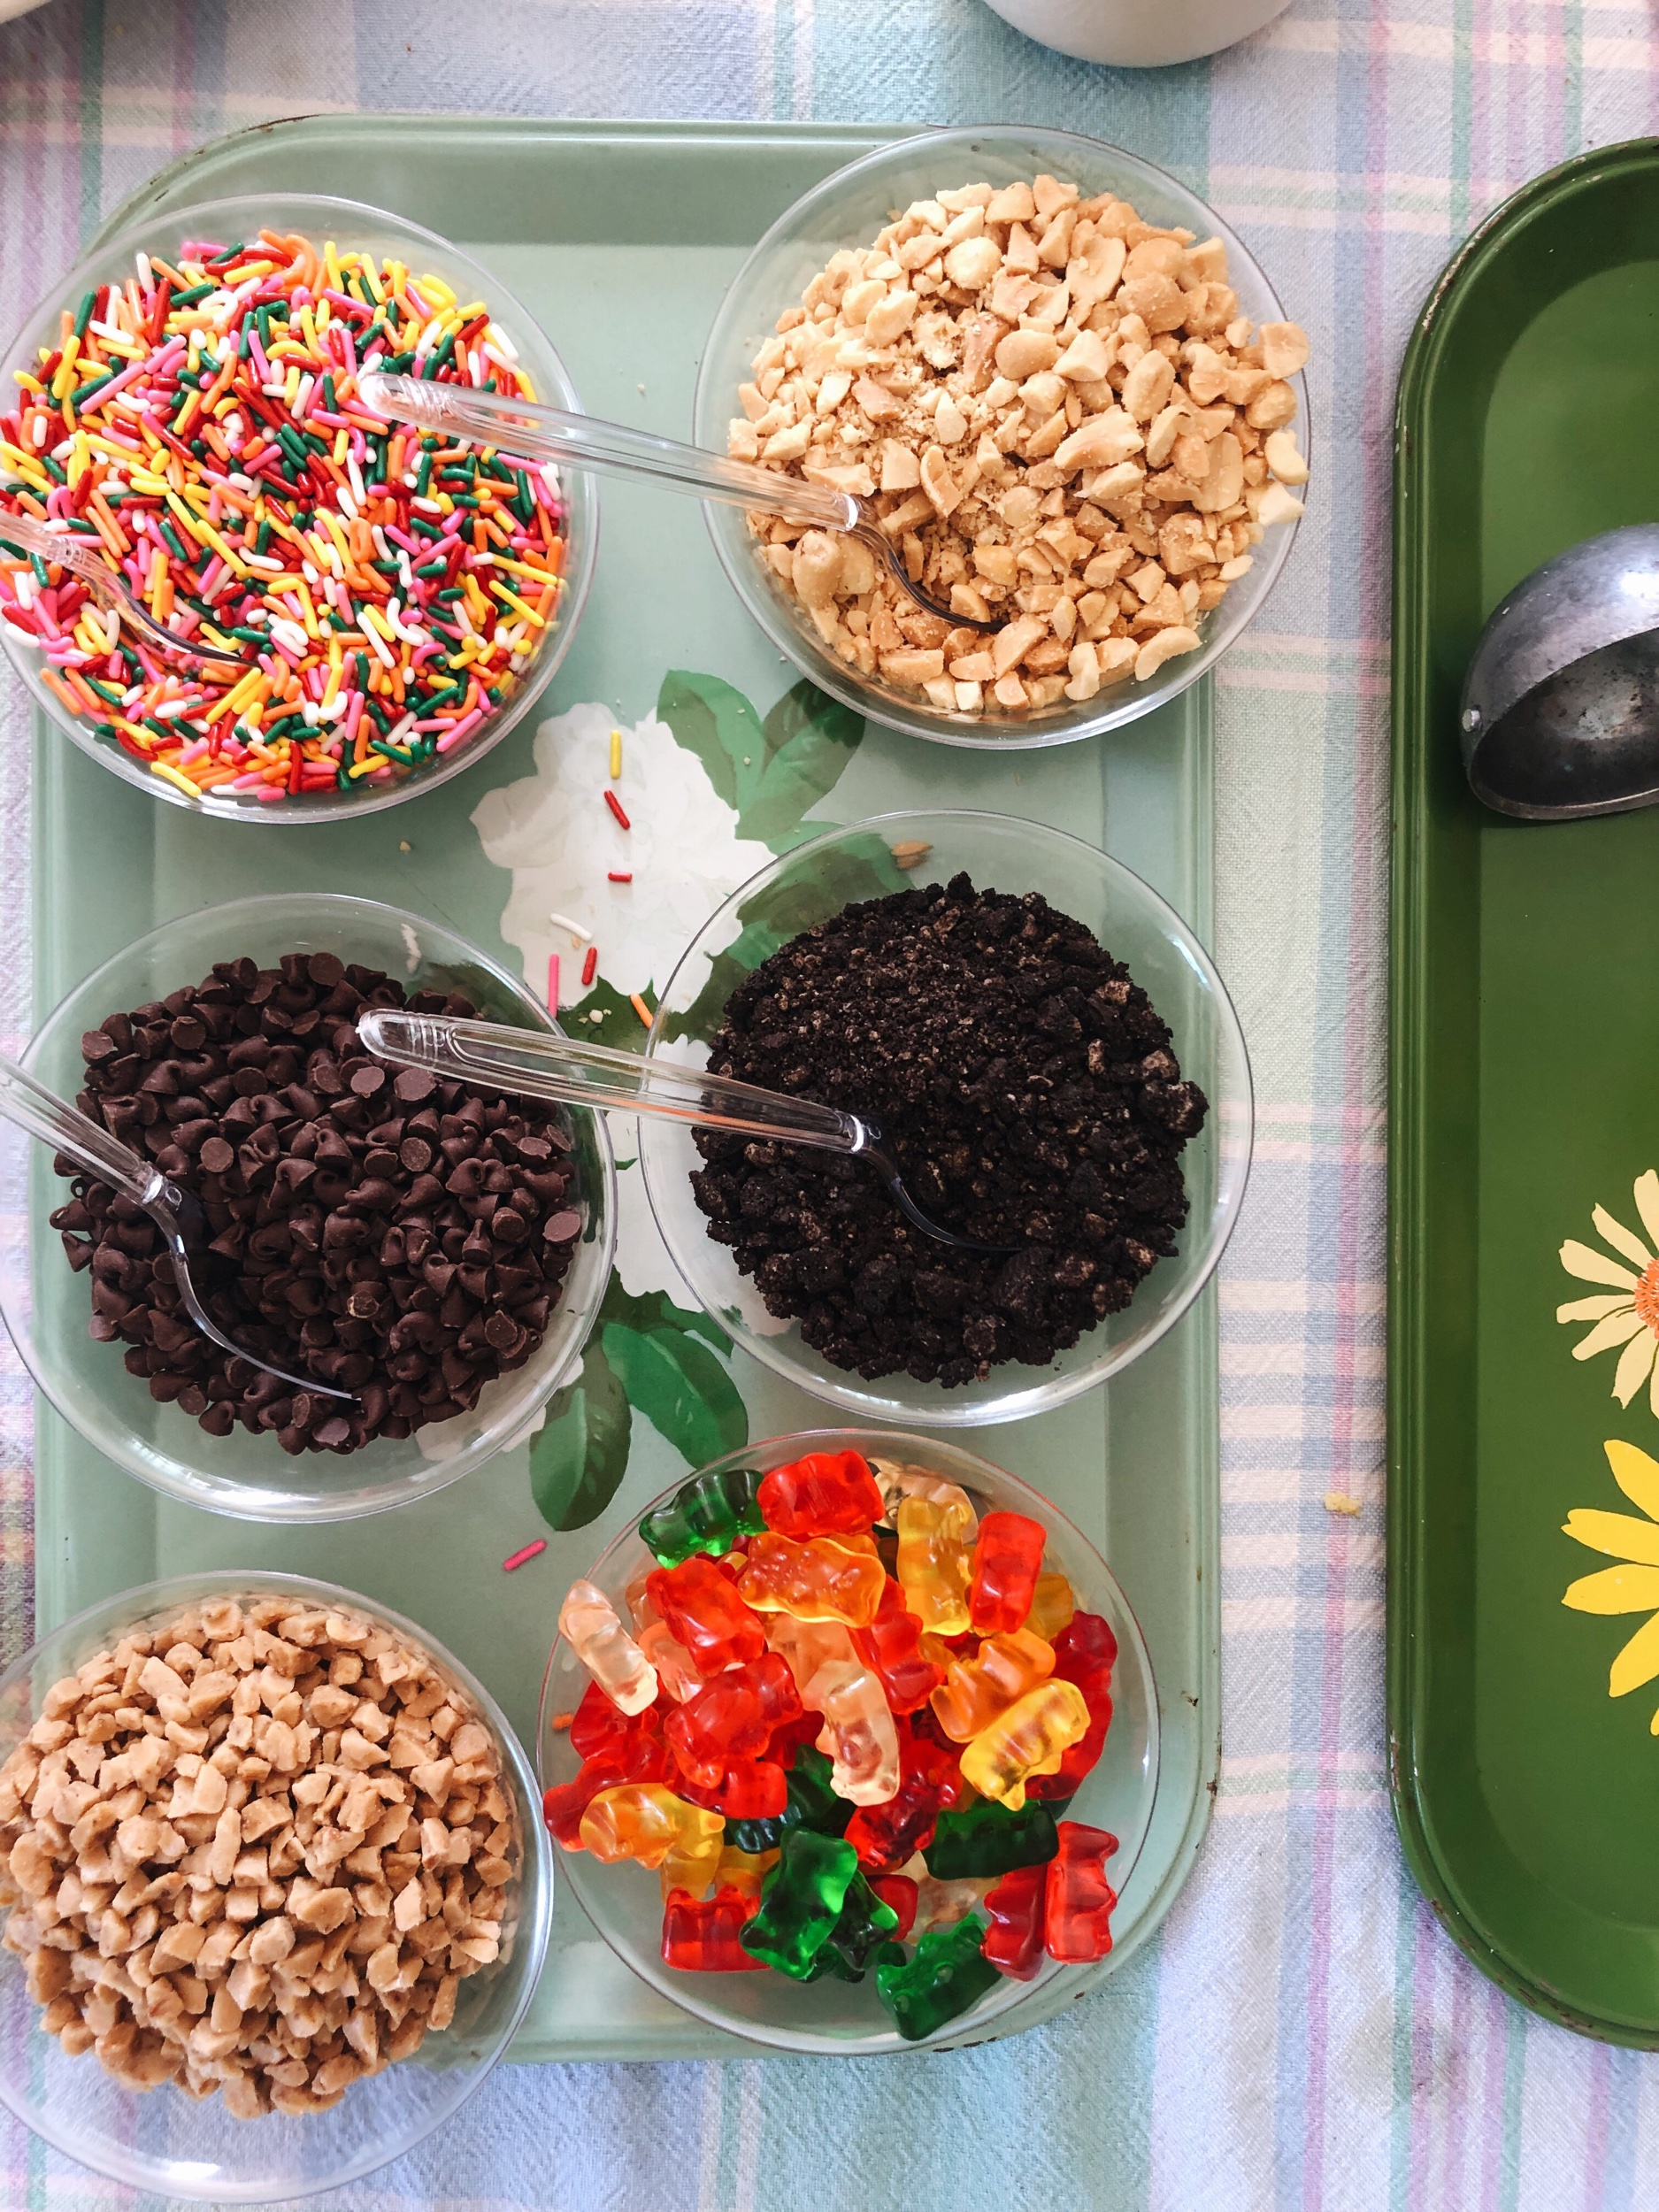 The ice cream toppings selection: rainbow sprinkles, chopped peanuts, mini chocolate chips, crushed Oreos, toffee bits and gummi bears.